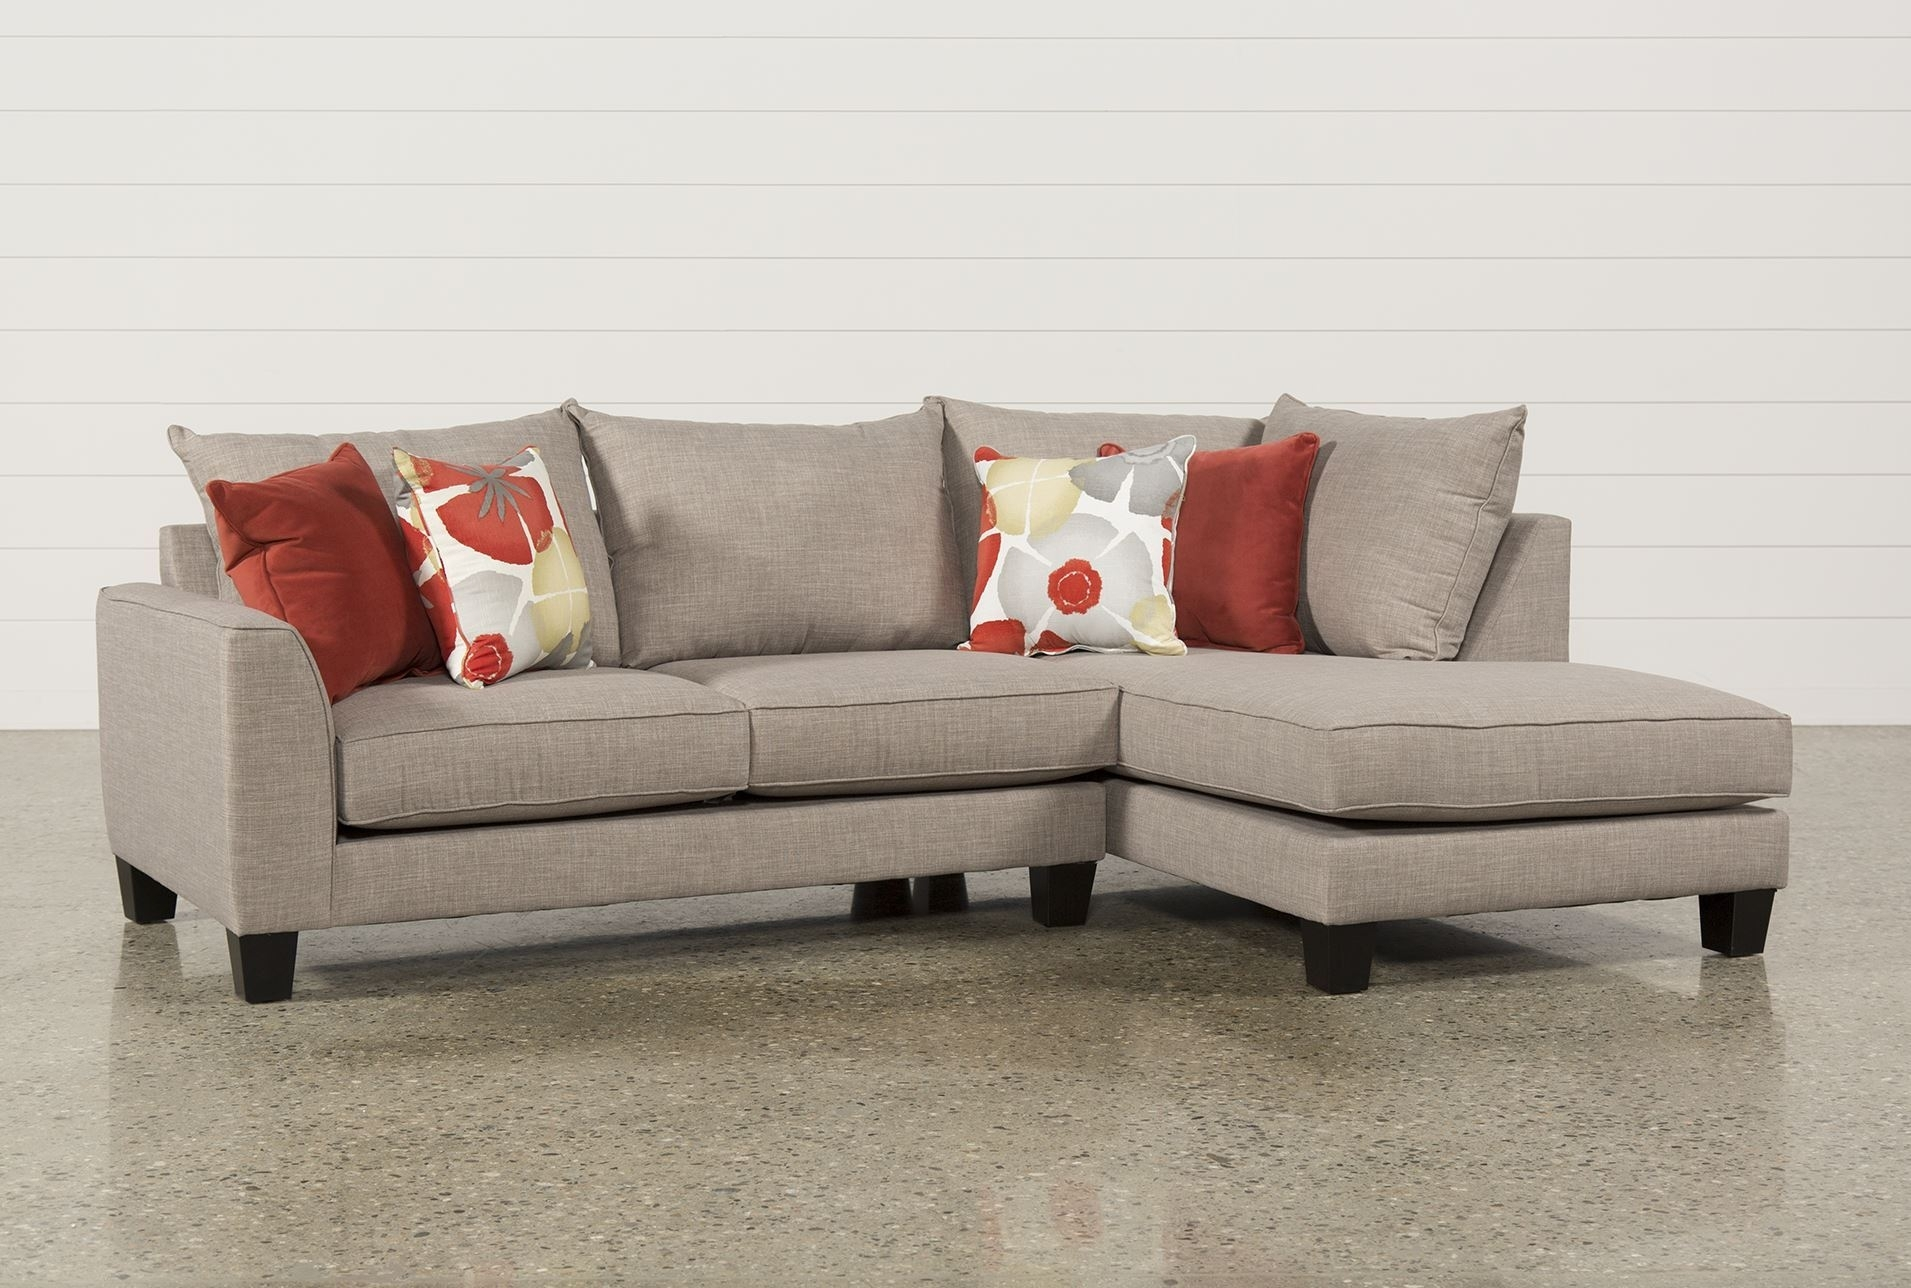 Awesome Collection Of 2 Piece Chaise Sectional In Kerri 2 Piece Throughout Kerri 2 Piece Sectionals With Laf Chaise (View 23 of 25)